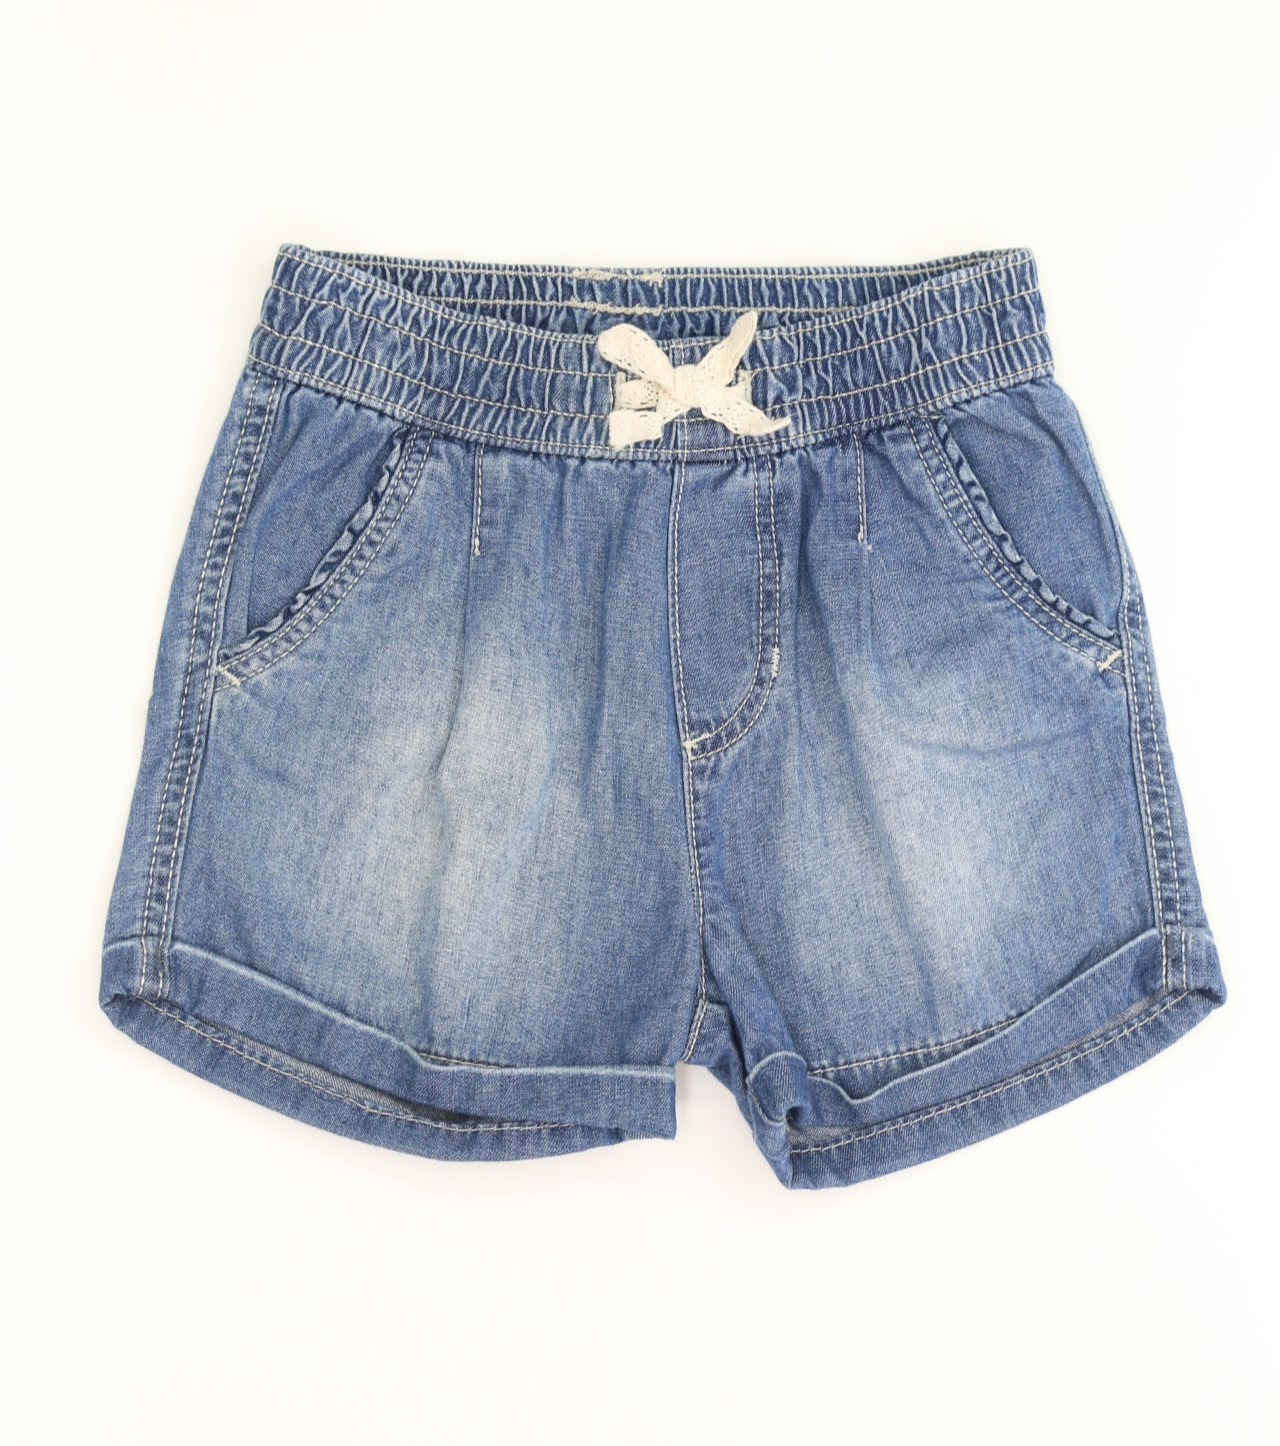 Shorts Jeans - H&M - 01 Ano